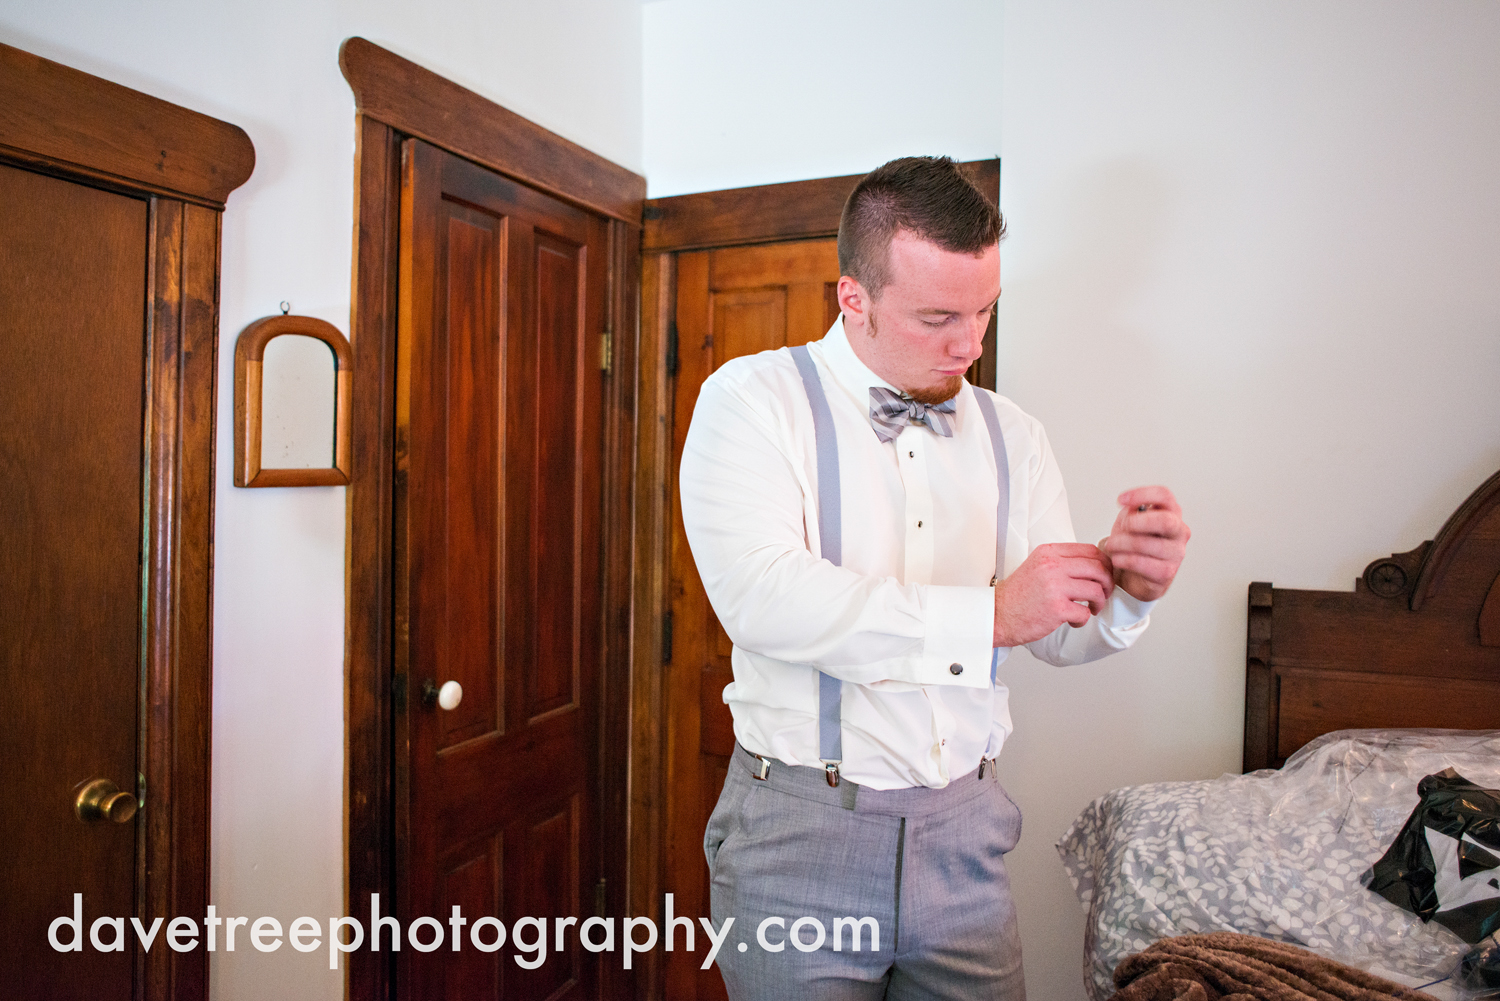 veranda_wedding_photographer_st_joseph_wedding_100.jpg